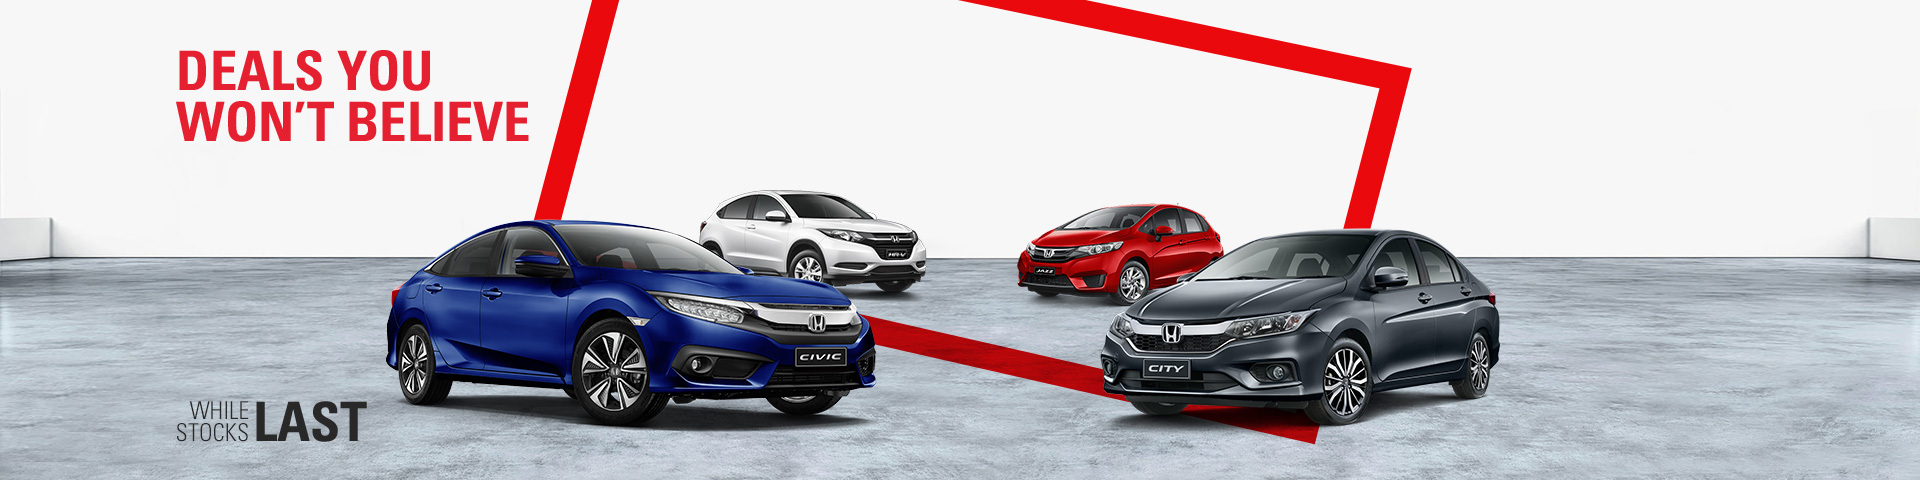 Honda - National Offer - Deals You Won't Believe